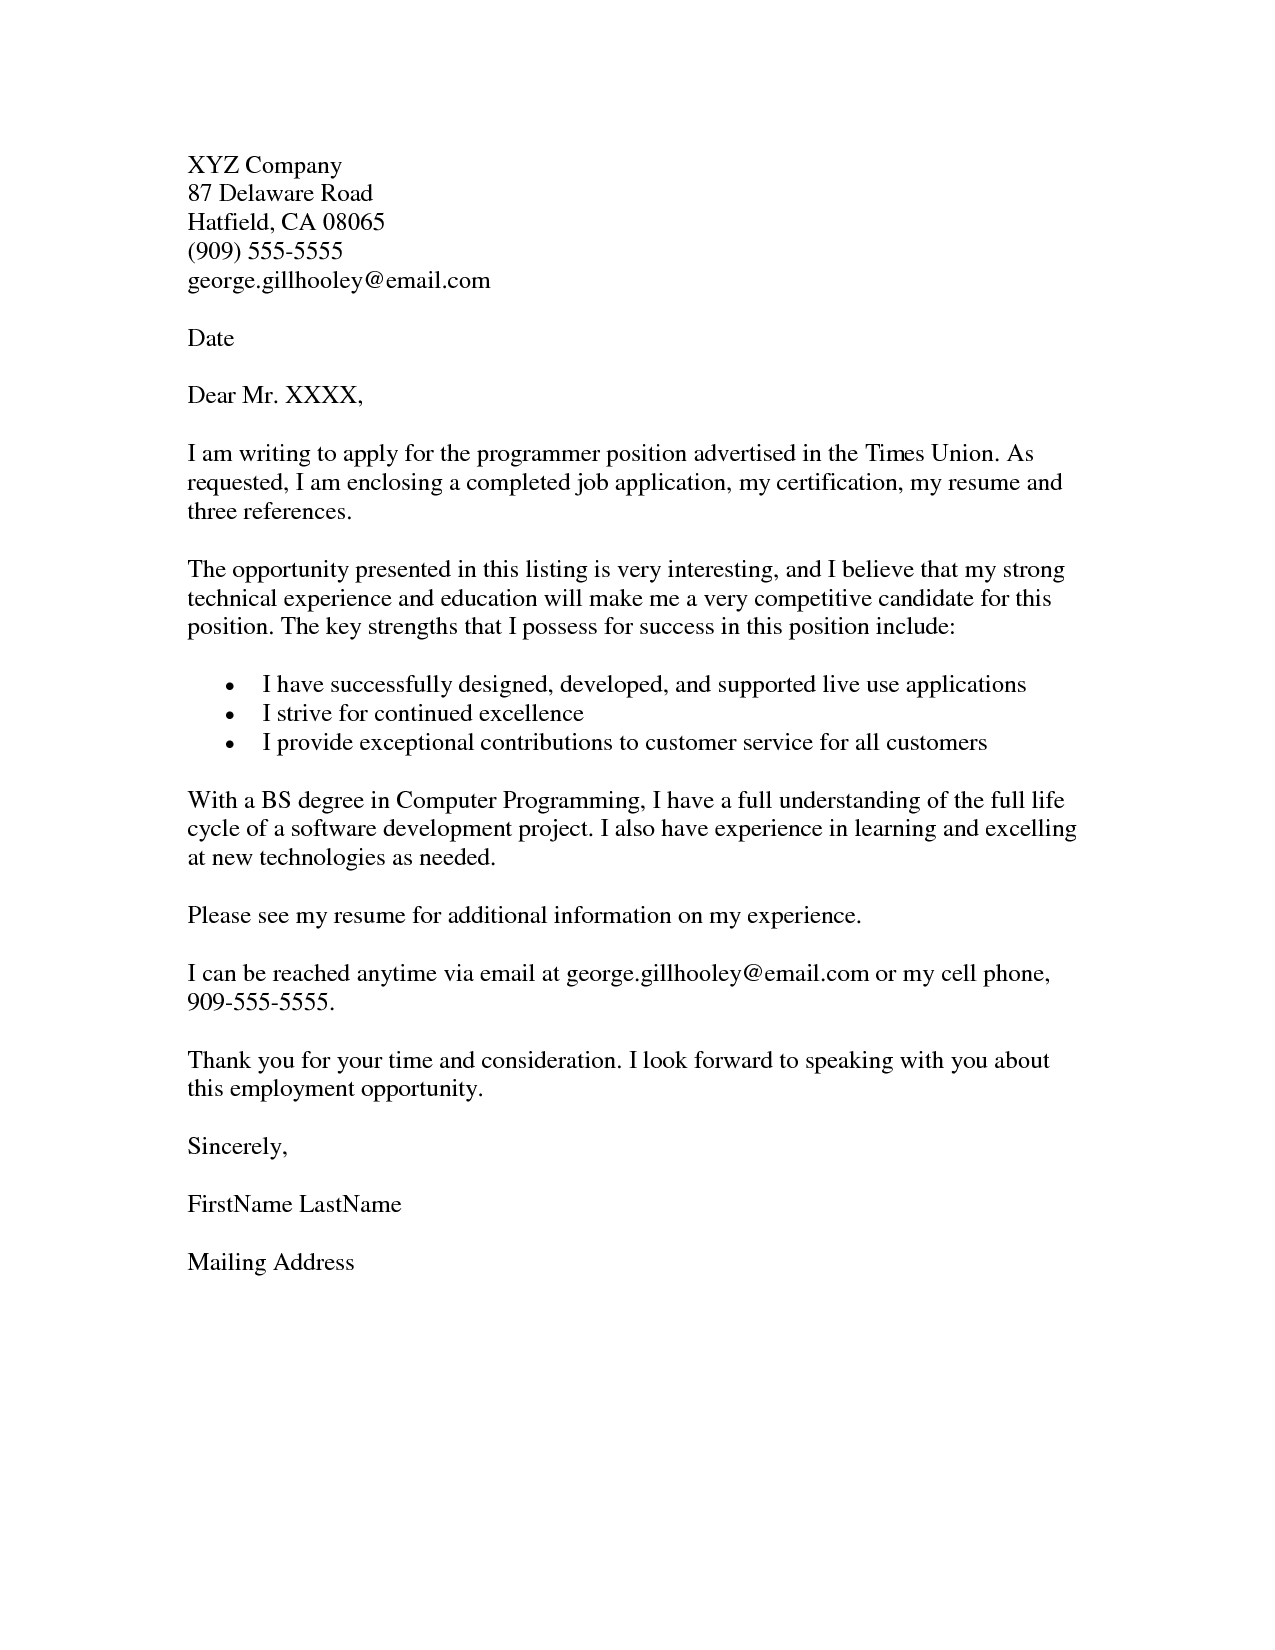 Cover Letter Sample Cover Letter For Job Application In EmailCover ...